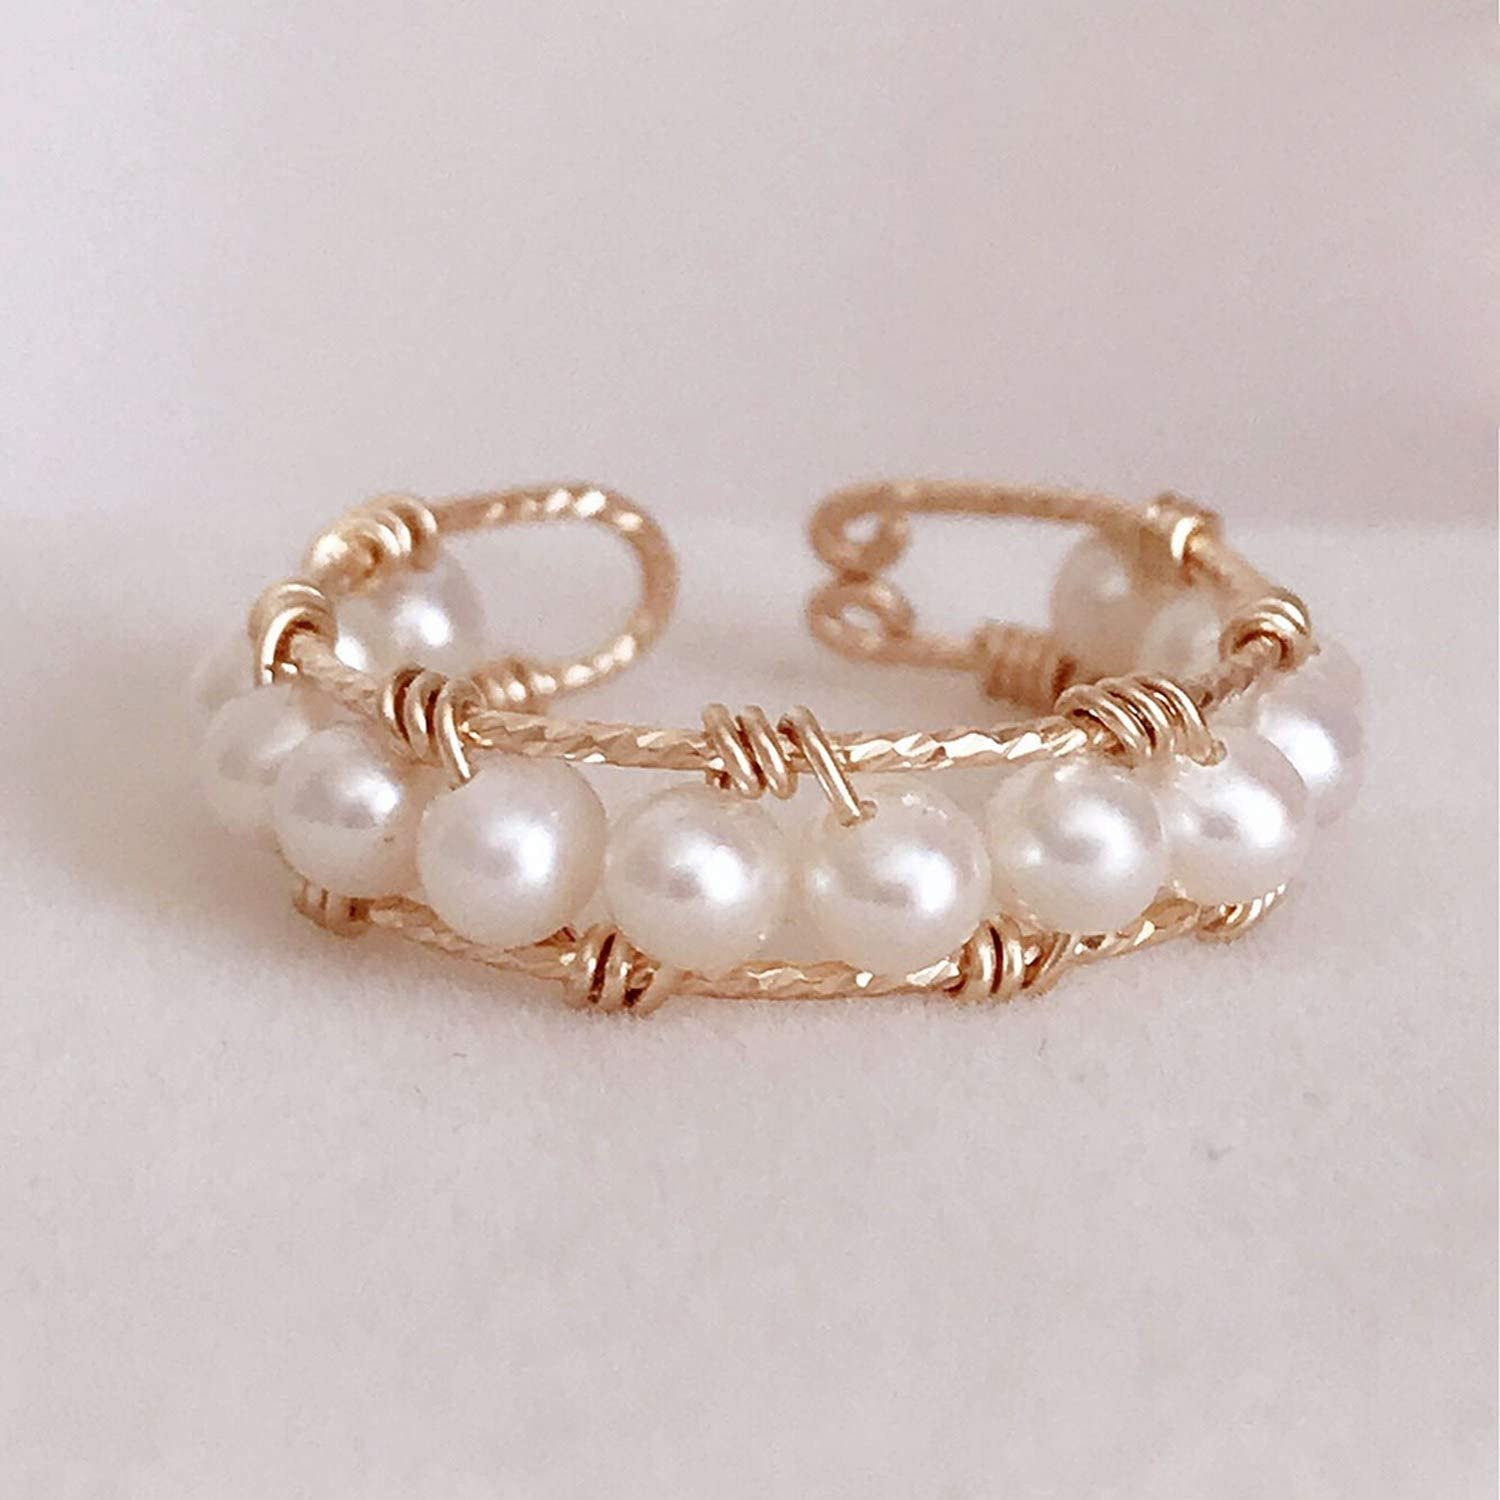 salmoph cadia Handmade Natural Pearls Knuckle Ring Gold Filled Personalized Rings Women,4,14K Gold Filling